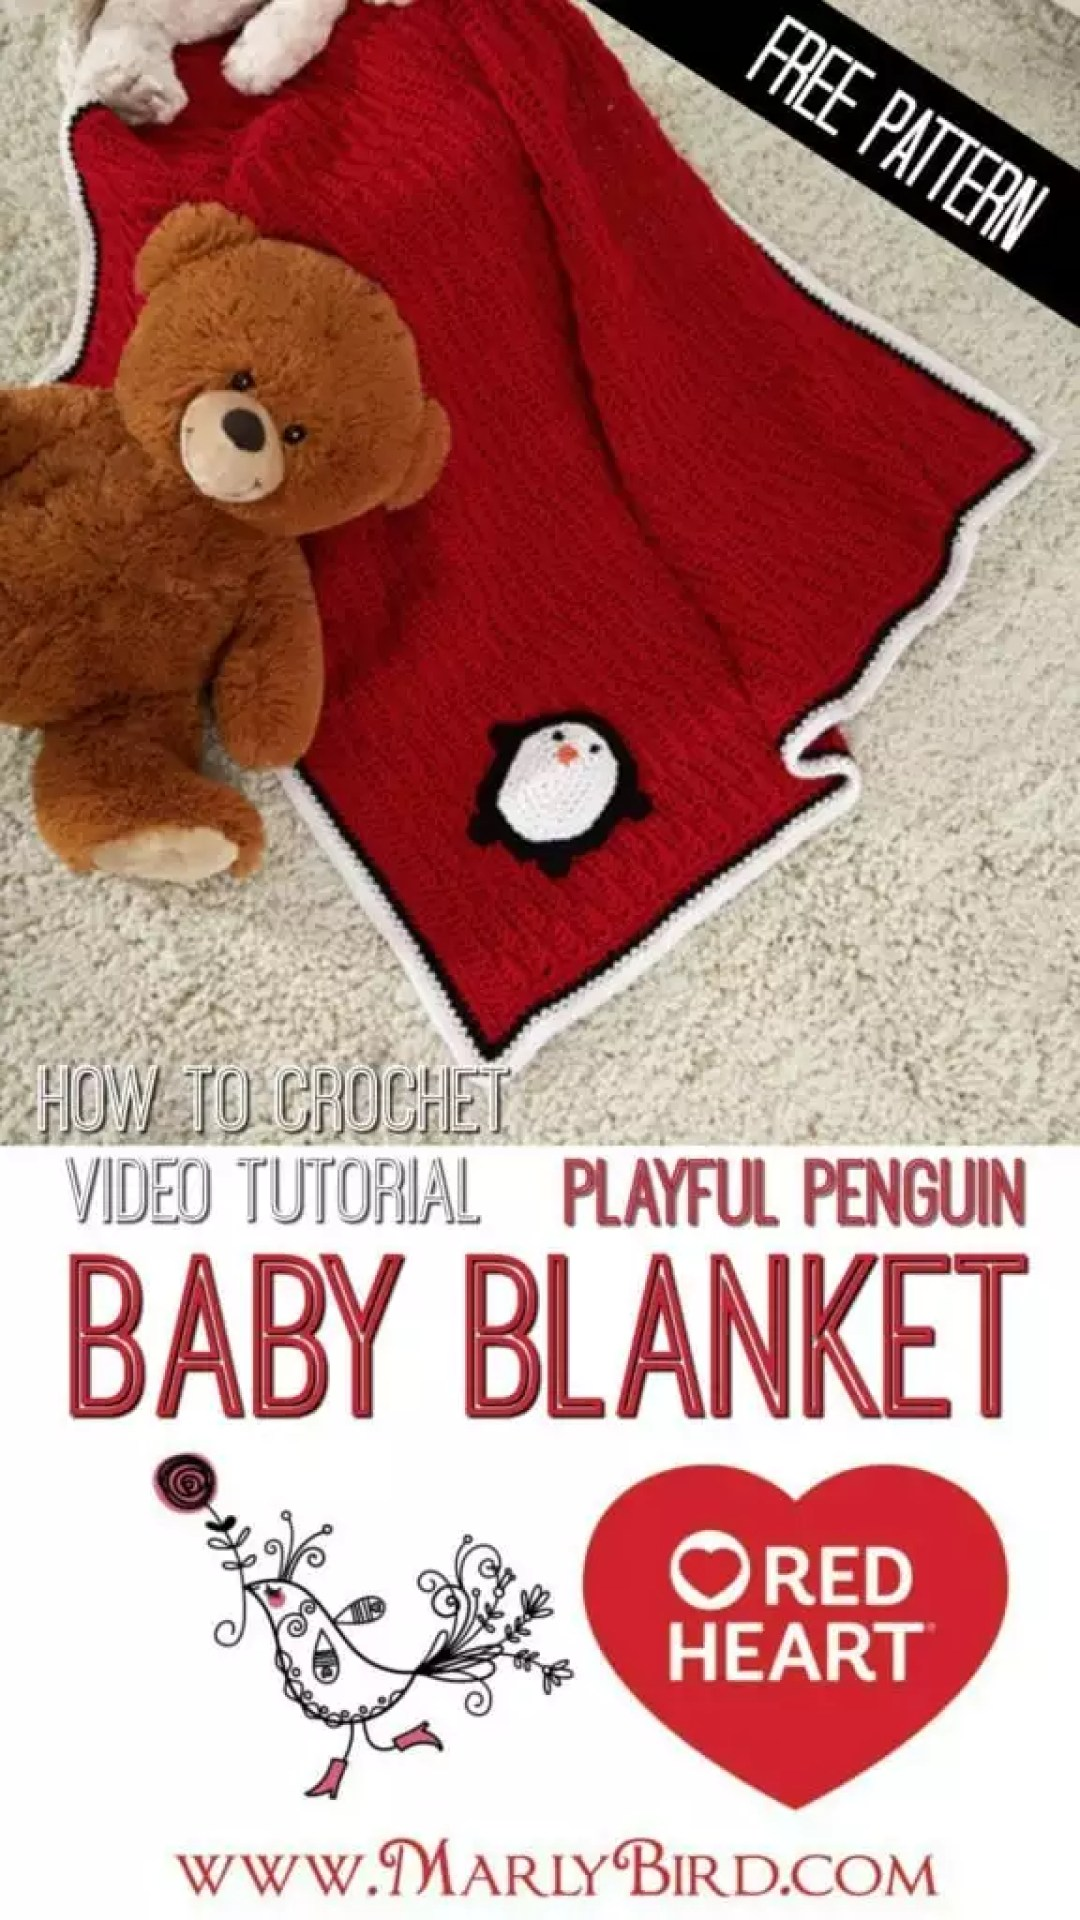 How To Crochet the Playful Penguin Blanket